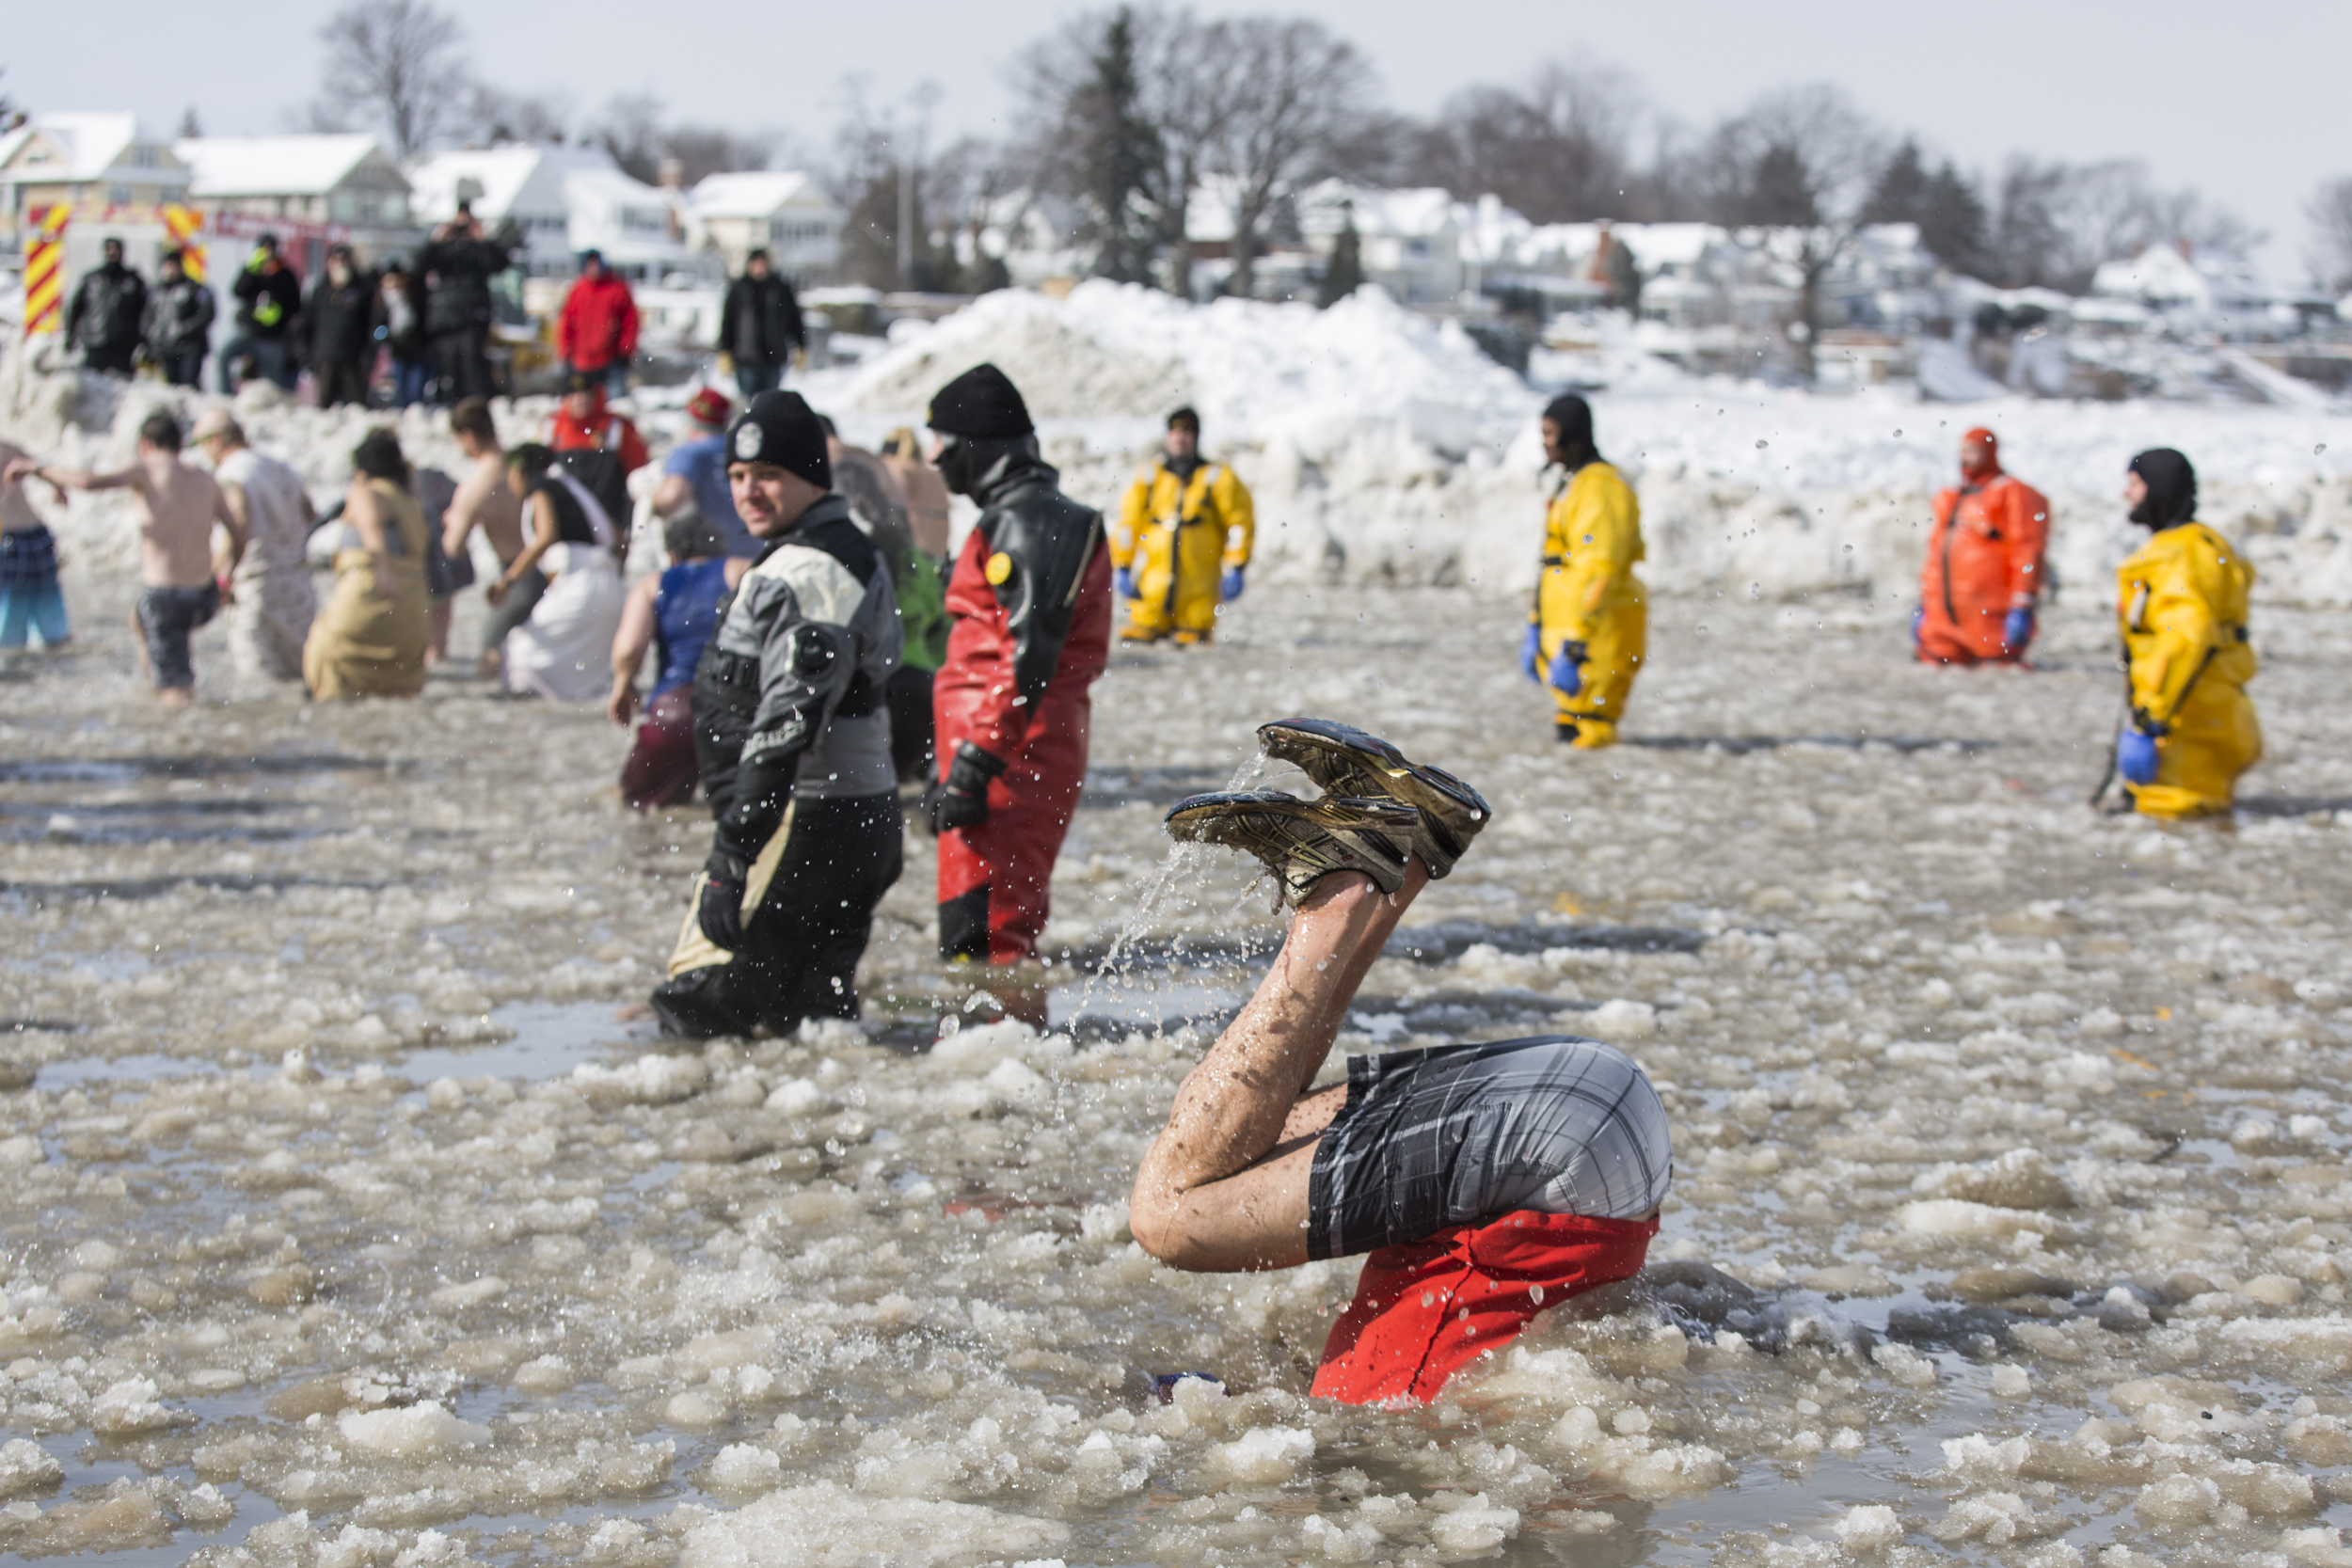 A participant somersaults into the cold waters of Lake Ontario at Polar Plunge at Ontario Beach Park in Rochester, NY on Feb. 14, 2016. Polar Plunge is an annual event where participants run into a body of water despite the cold temperatures of winter as a fundraising and awareness initiative to benefit the athletes and programs of Special Olympics New York.